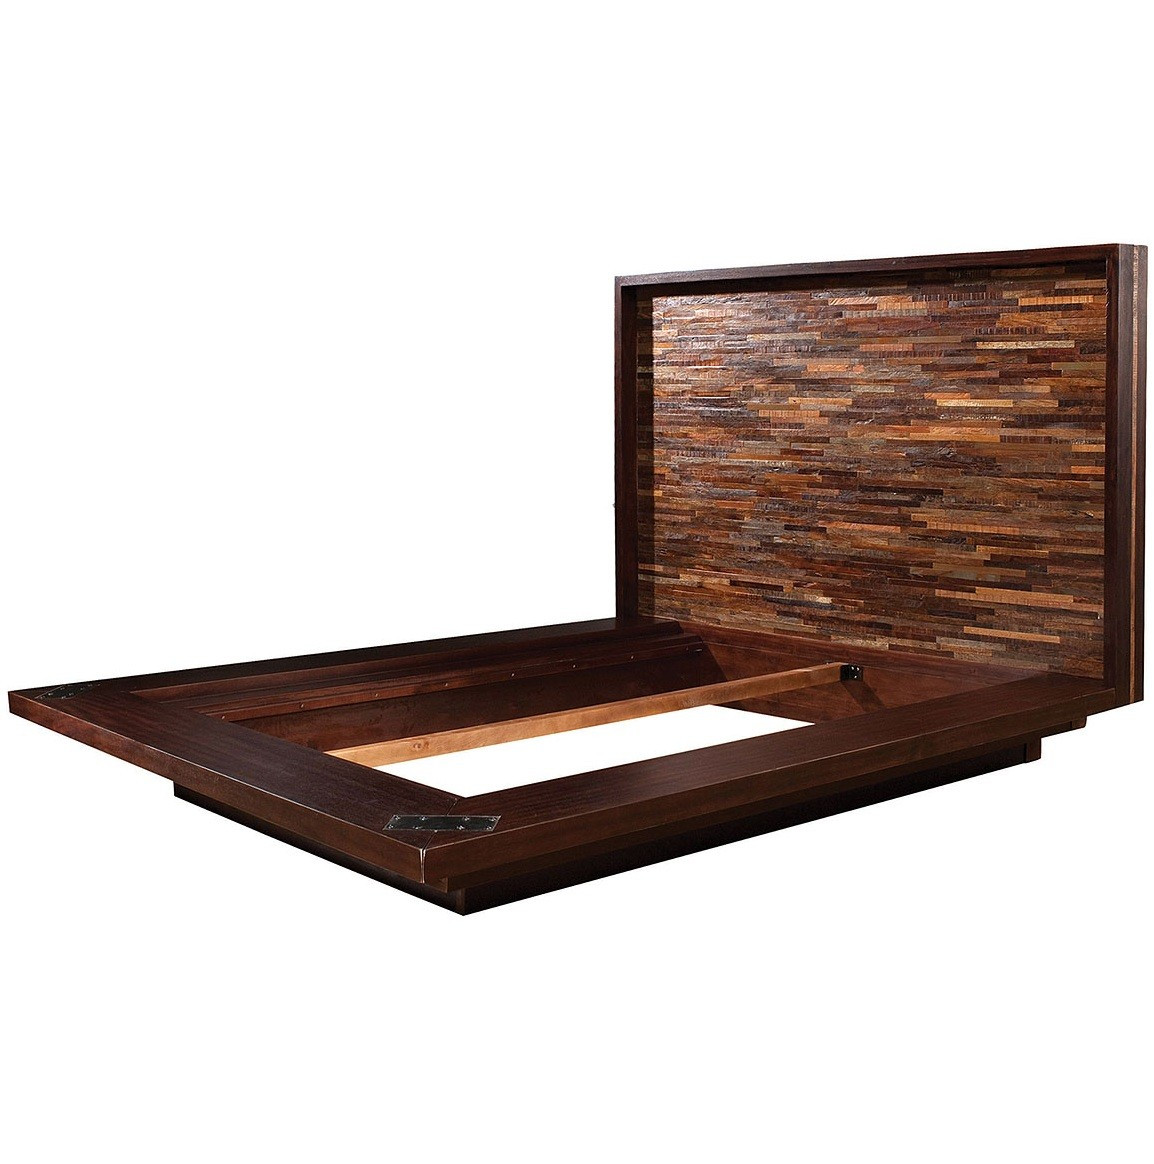 Queen Platform Bed Frames devon reclaimed wood queen platform bed frame | zin home